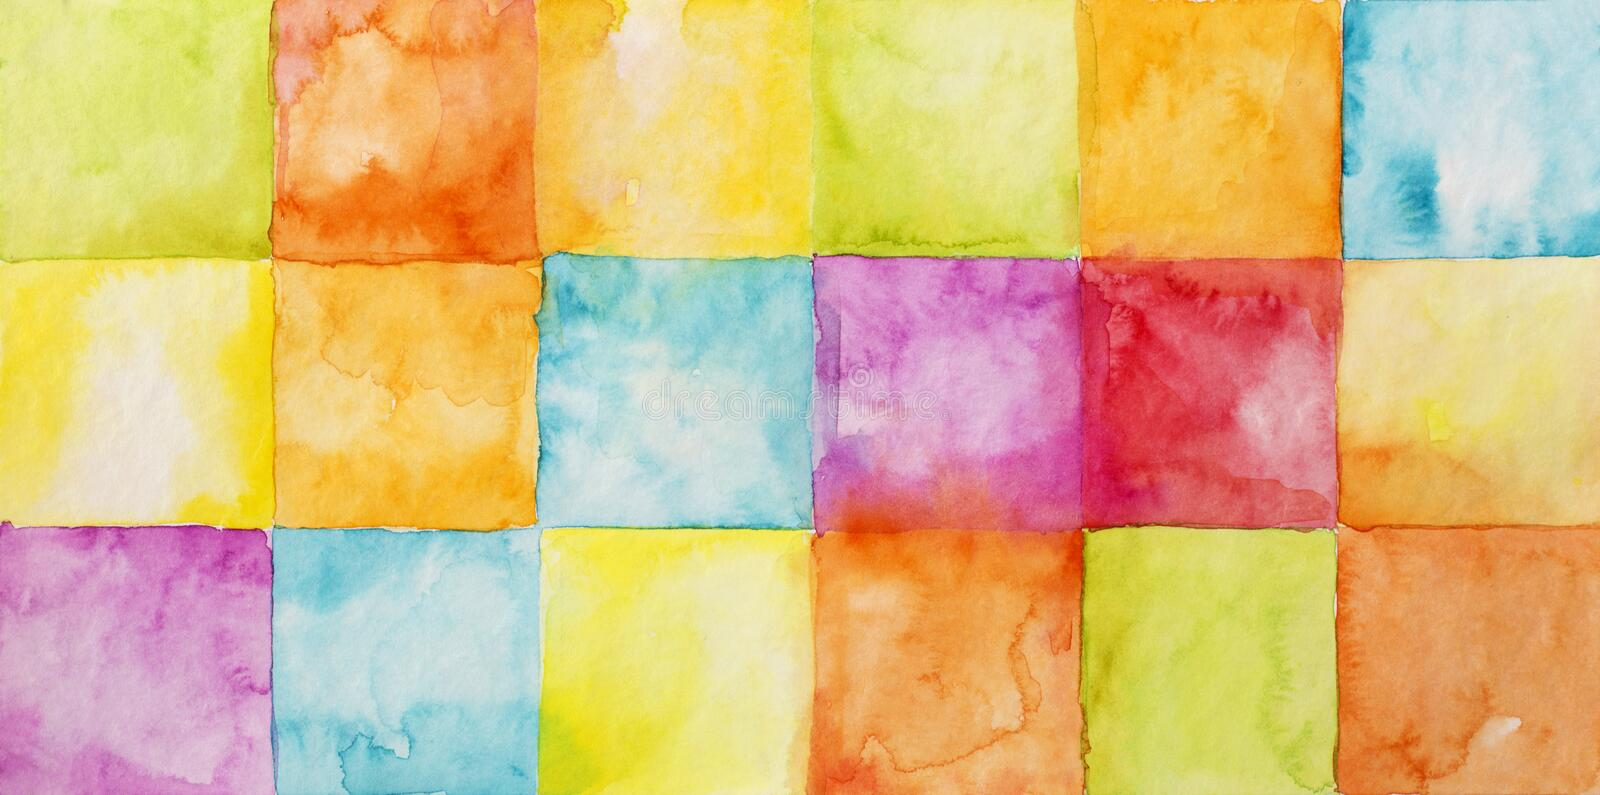 Colorful abstract watercolor background. Colorful abstract watercolor textured background vector illustration